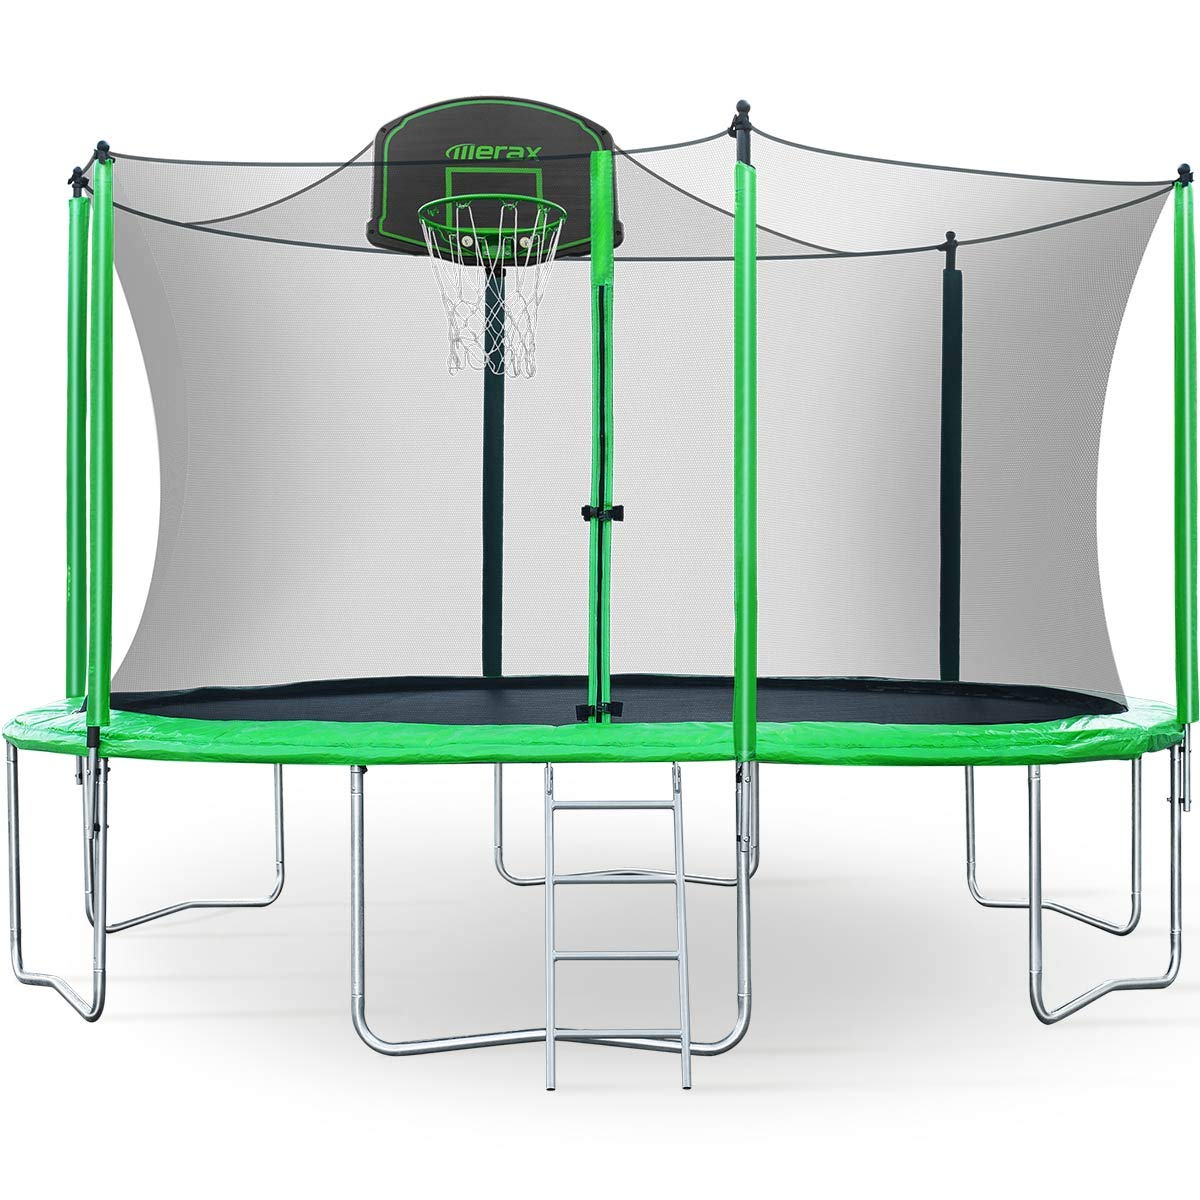 Merax 14FT 12FT Trampoline with Safety Enclosure Net, Basketball Hoop and Ladder - BV Certificated - Basketball Trampoline (12 Feet) by Merax (Image #1)